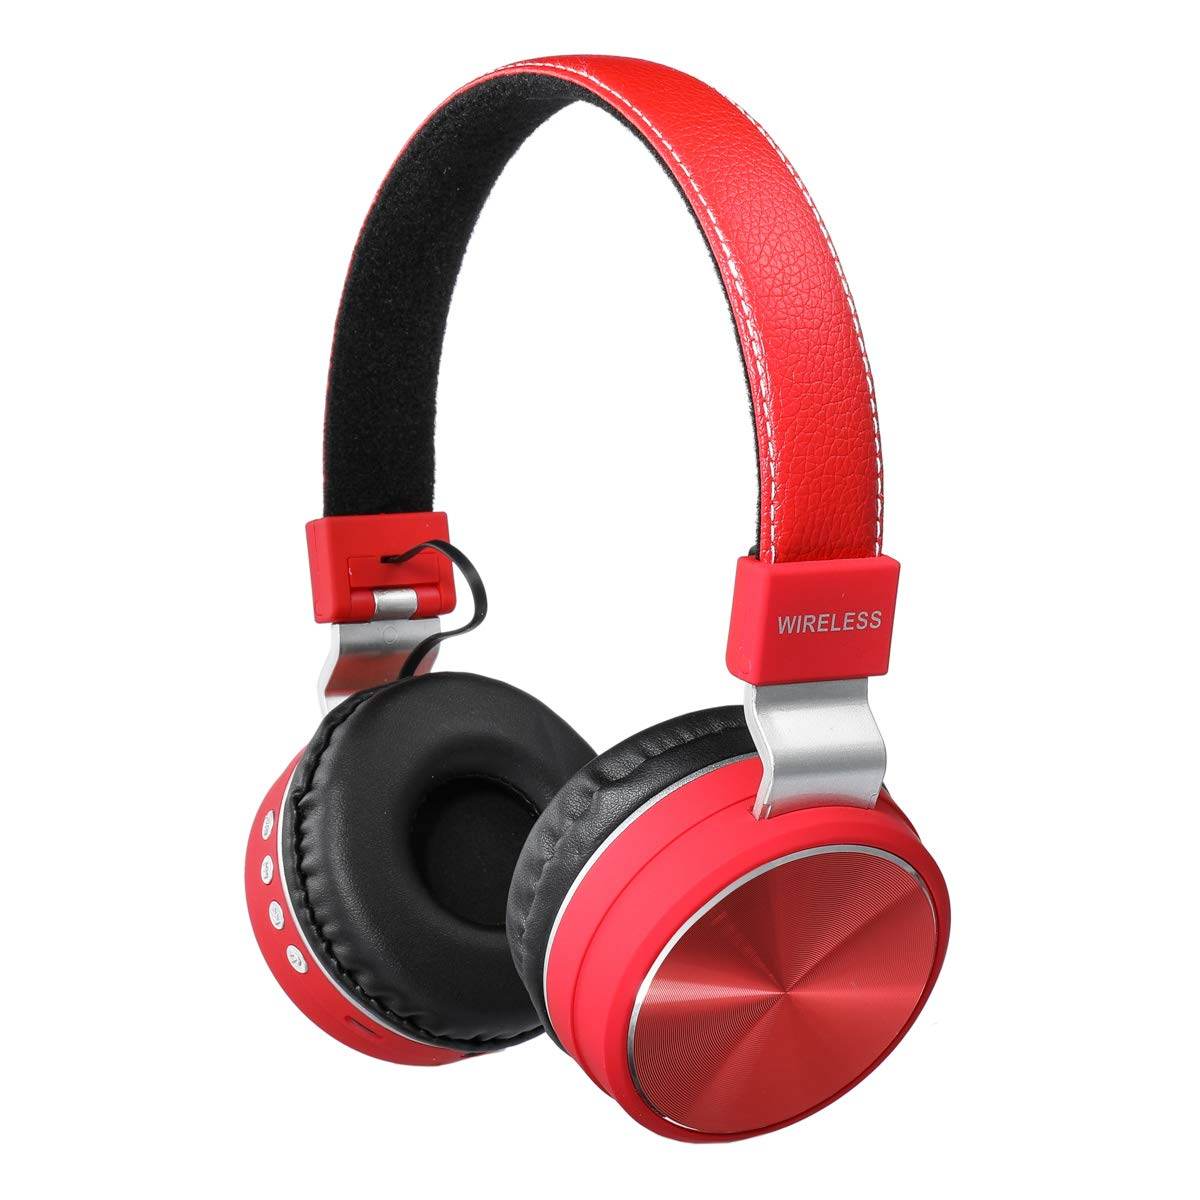 HM2 Noise Cancelling Bluetooth 4.2 Headphone with Microphone, Wireless Lightweight On Ear Headphone, Portable Fold for TV Cellphone Travel Work and Support TF Card (Red)